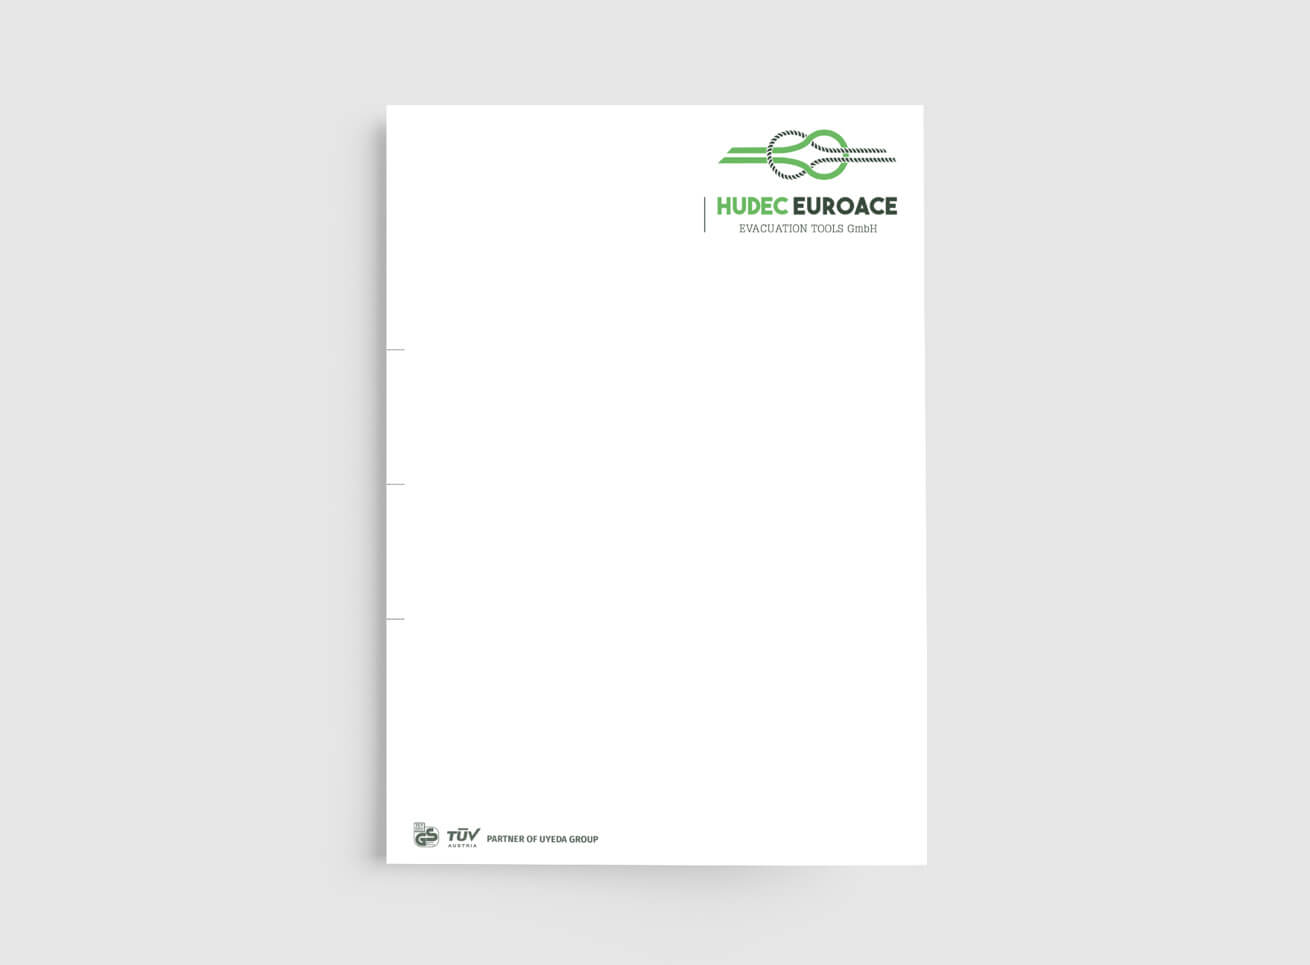 Hudec Euroace Briefpapier Grafikdesign